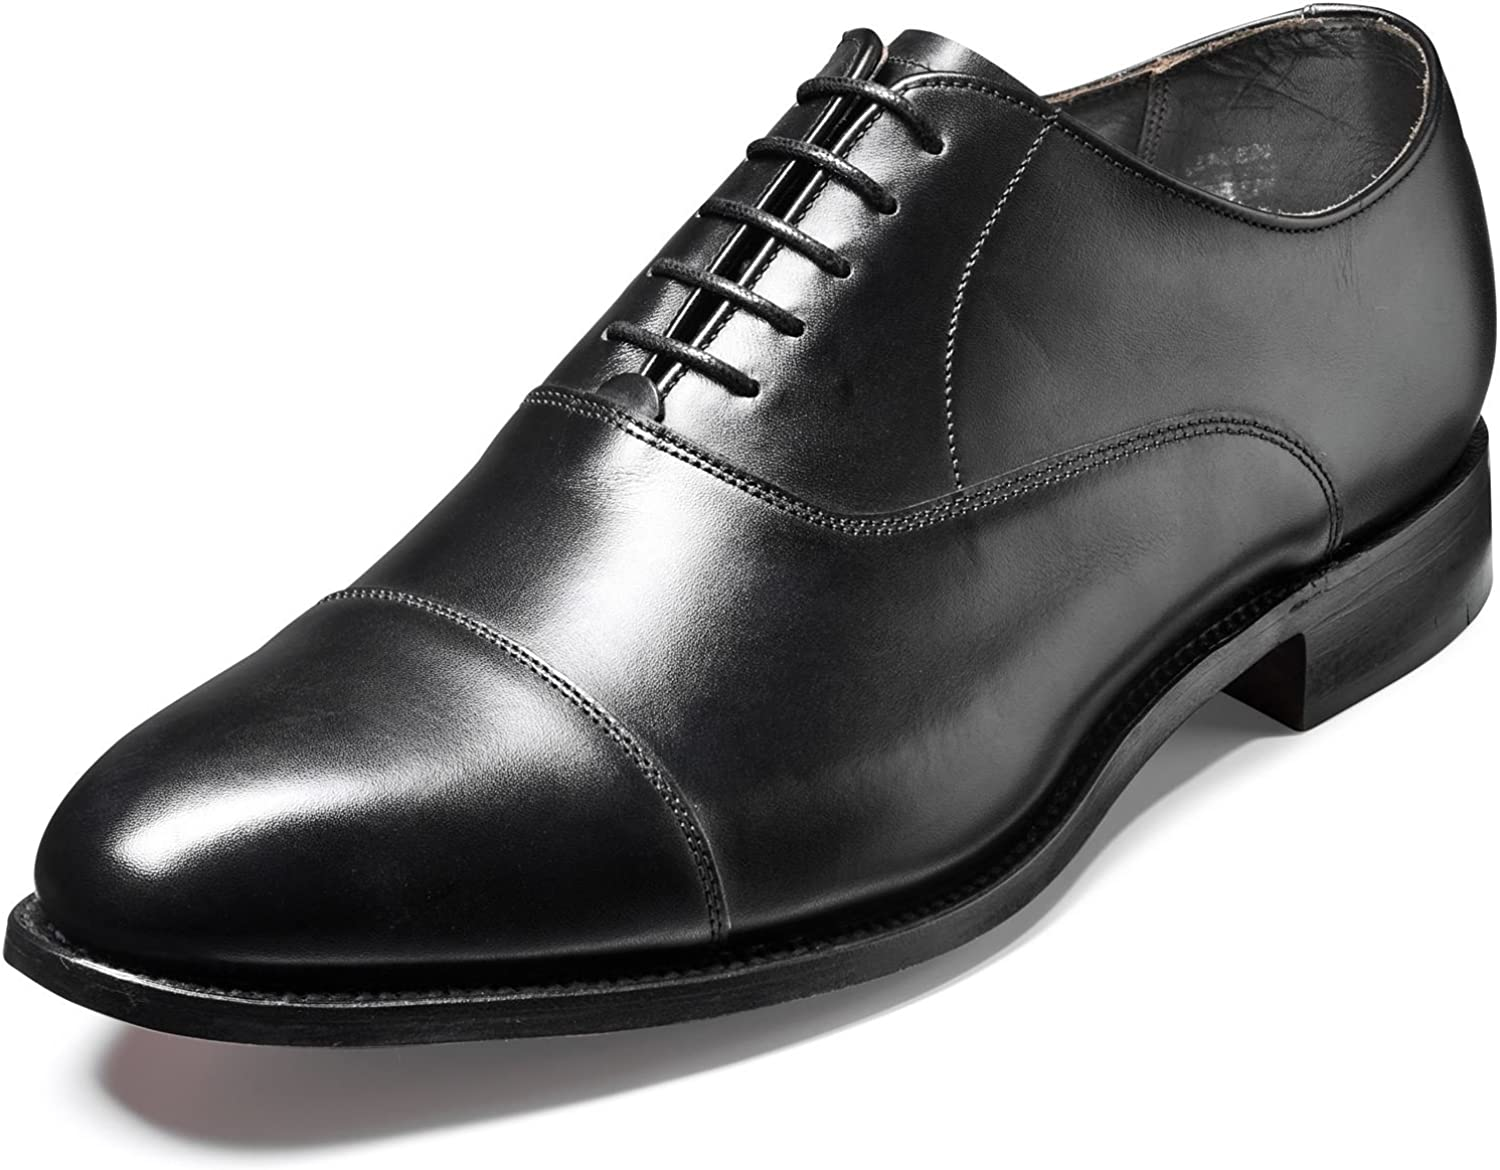 Barker Shoes Style: Duxford - Black